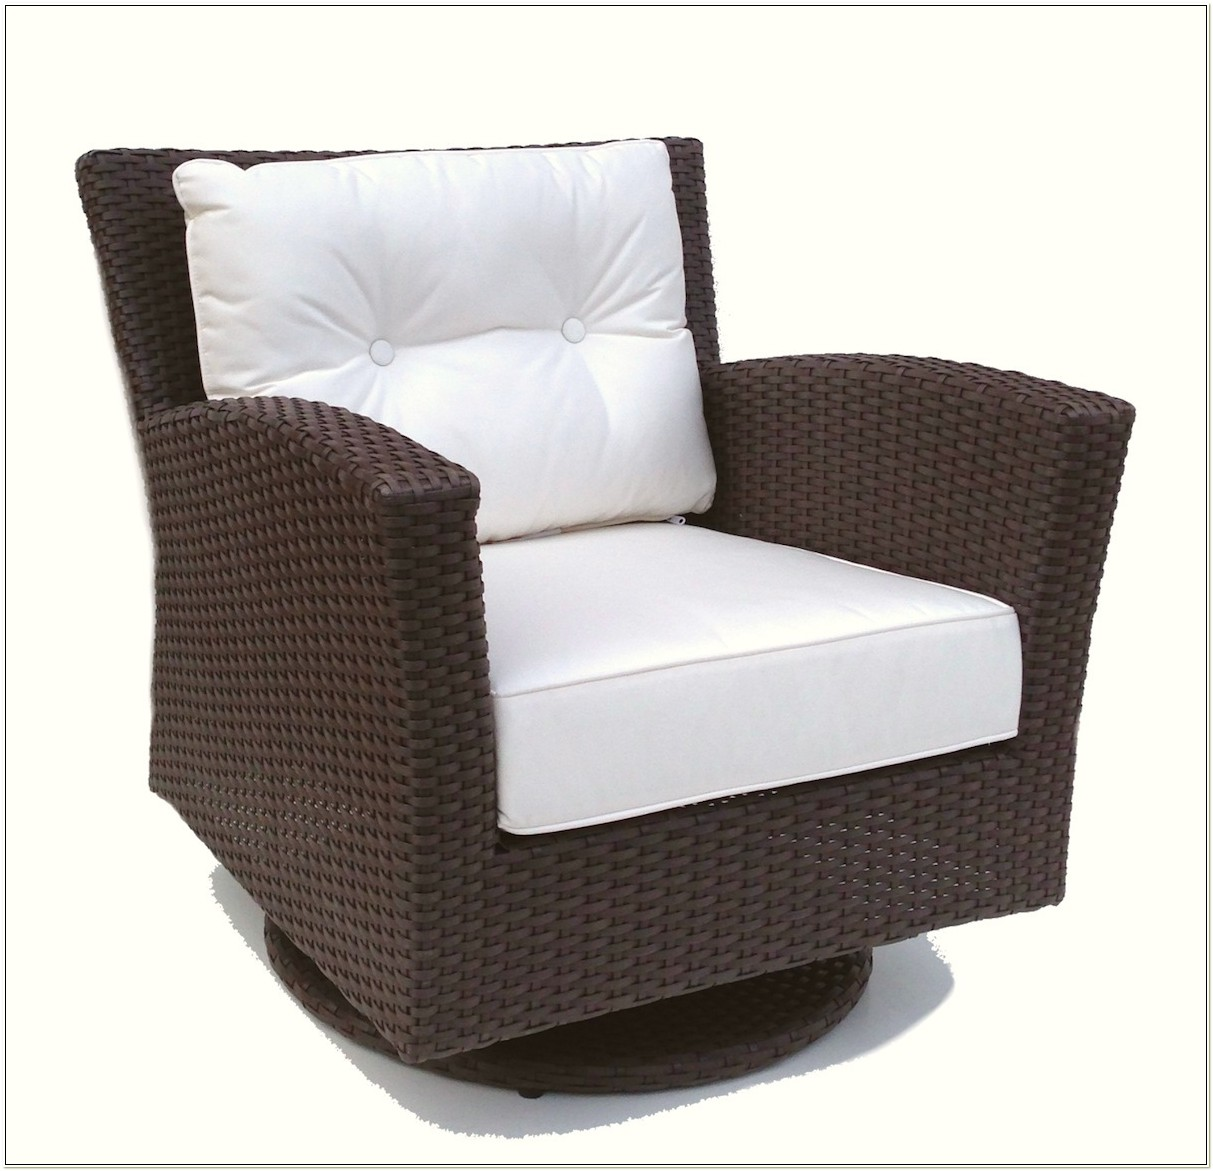 Patio Wicker Swivel Rocker Chair